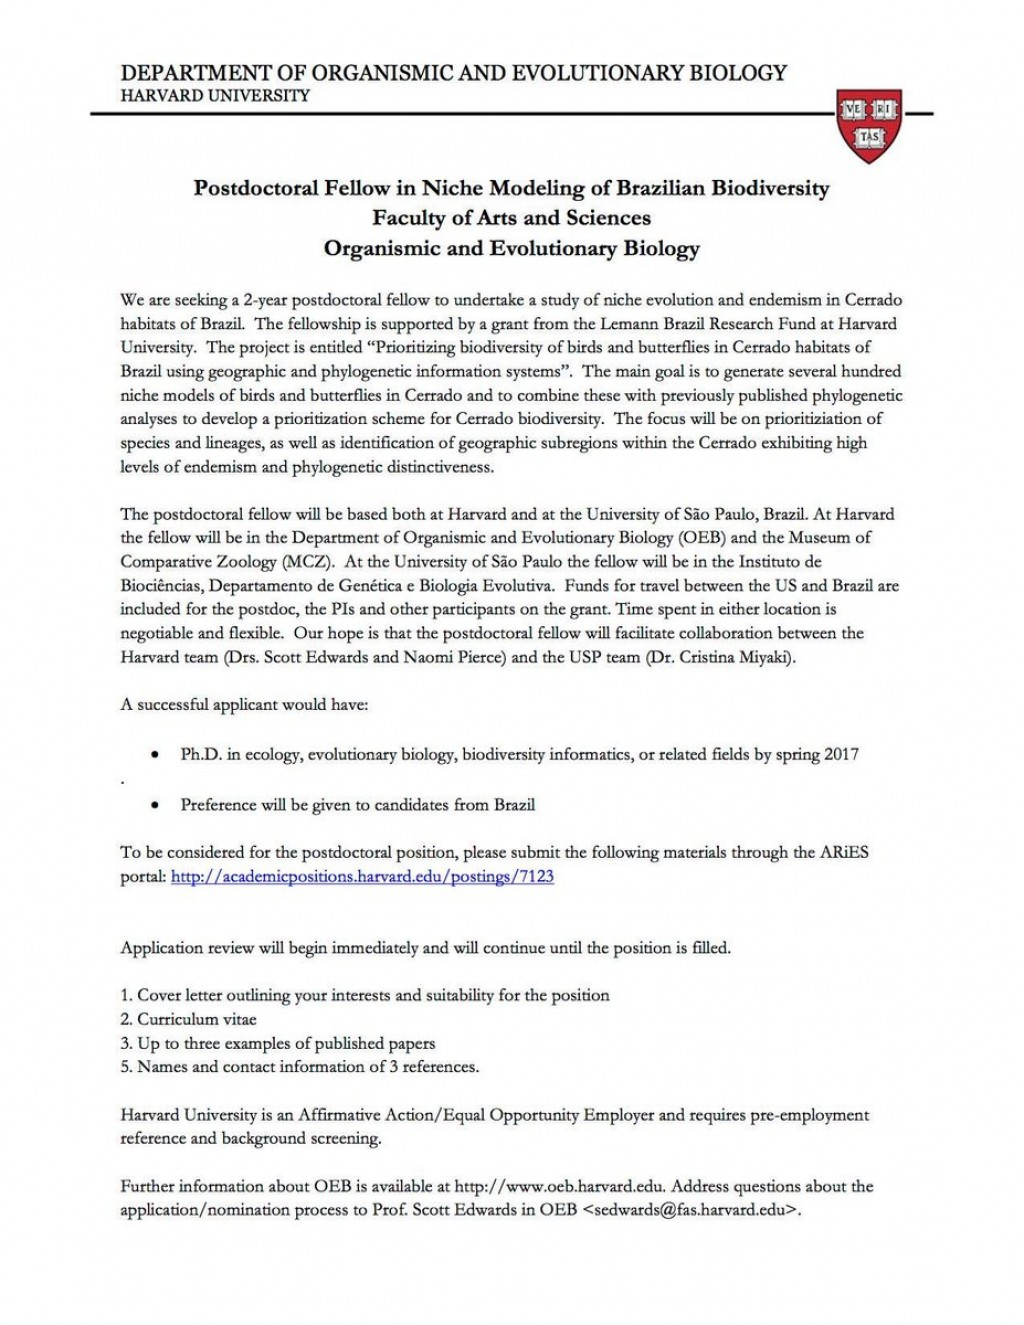 017 Cs7fb8bxgaajzro What Is Proposal Essay Top A Argument The Purpose Of Large